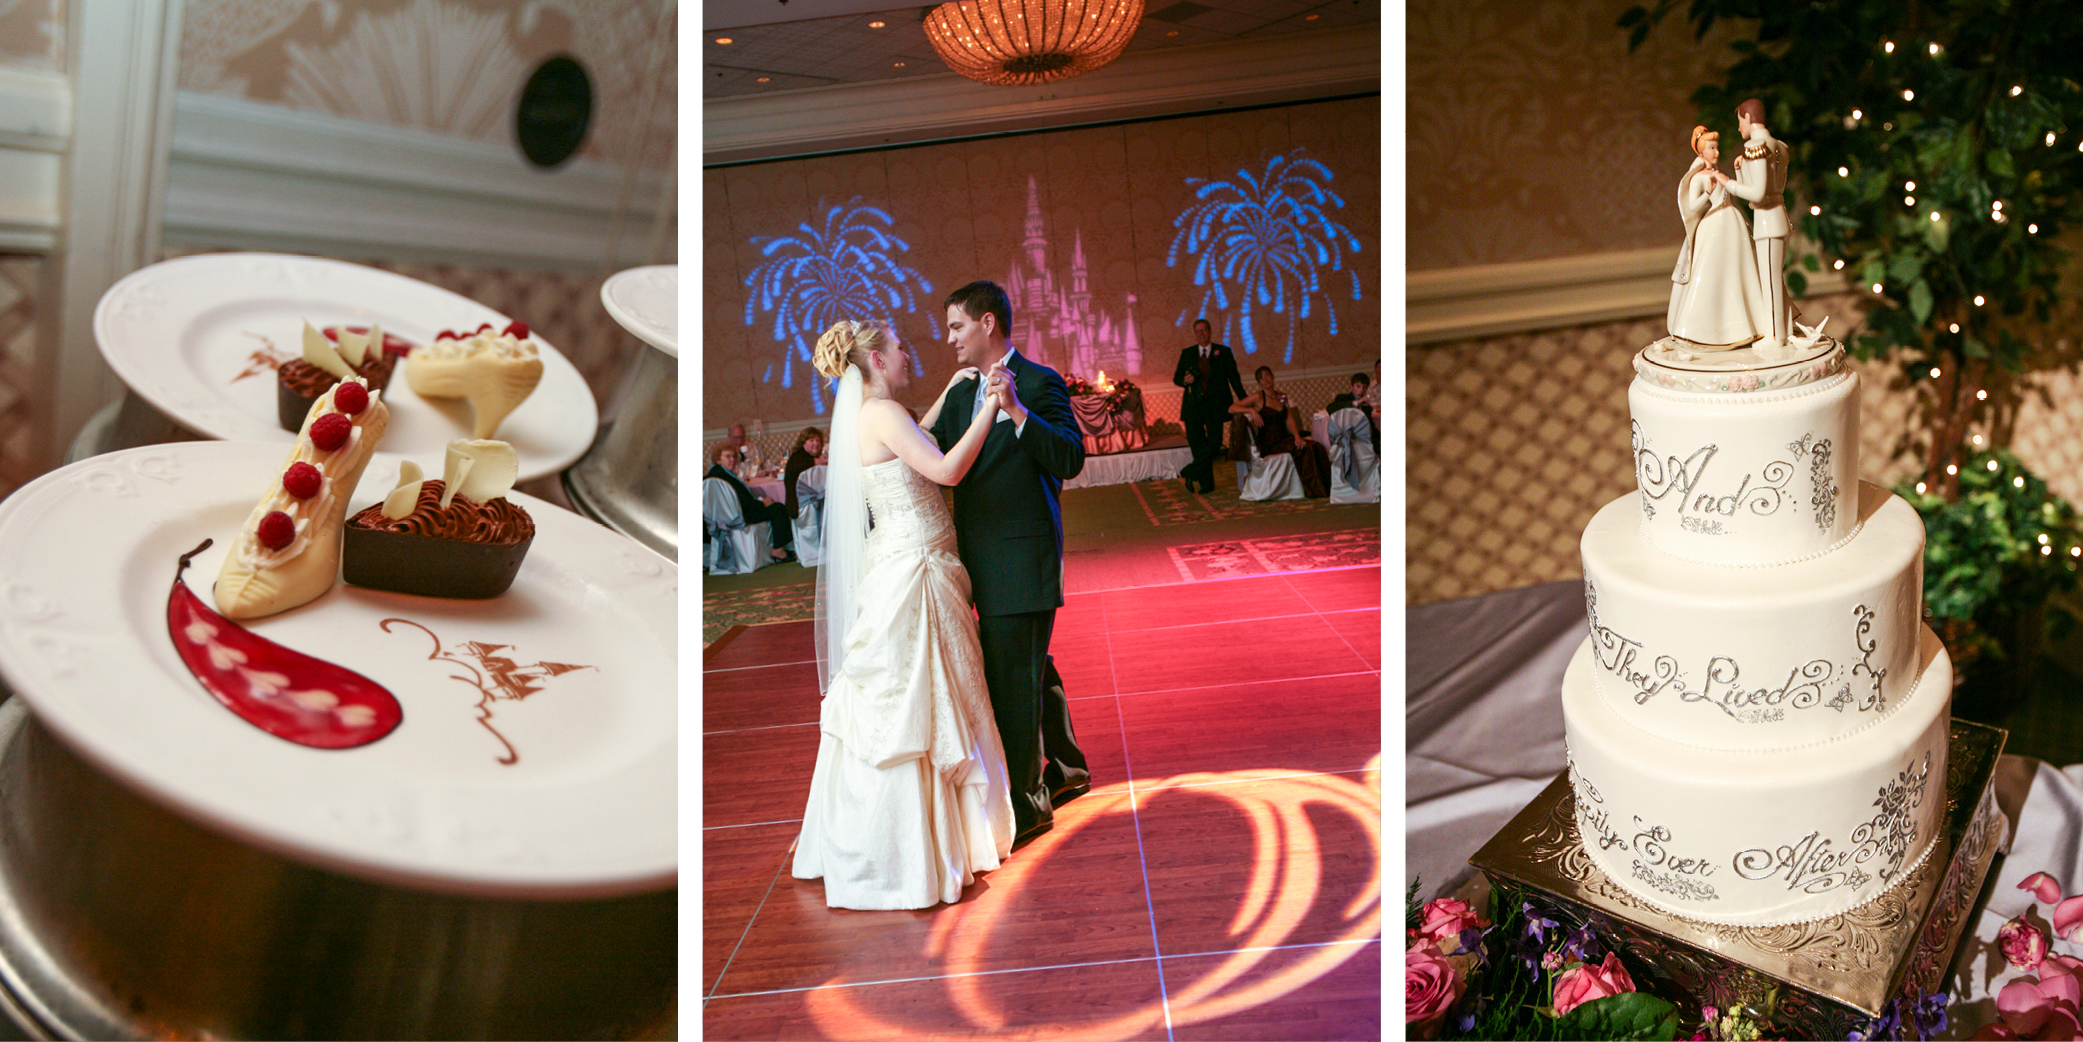 Some Disney touches at our wedding included a glass slipper dessert, castle projections and a fairy tale cake.